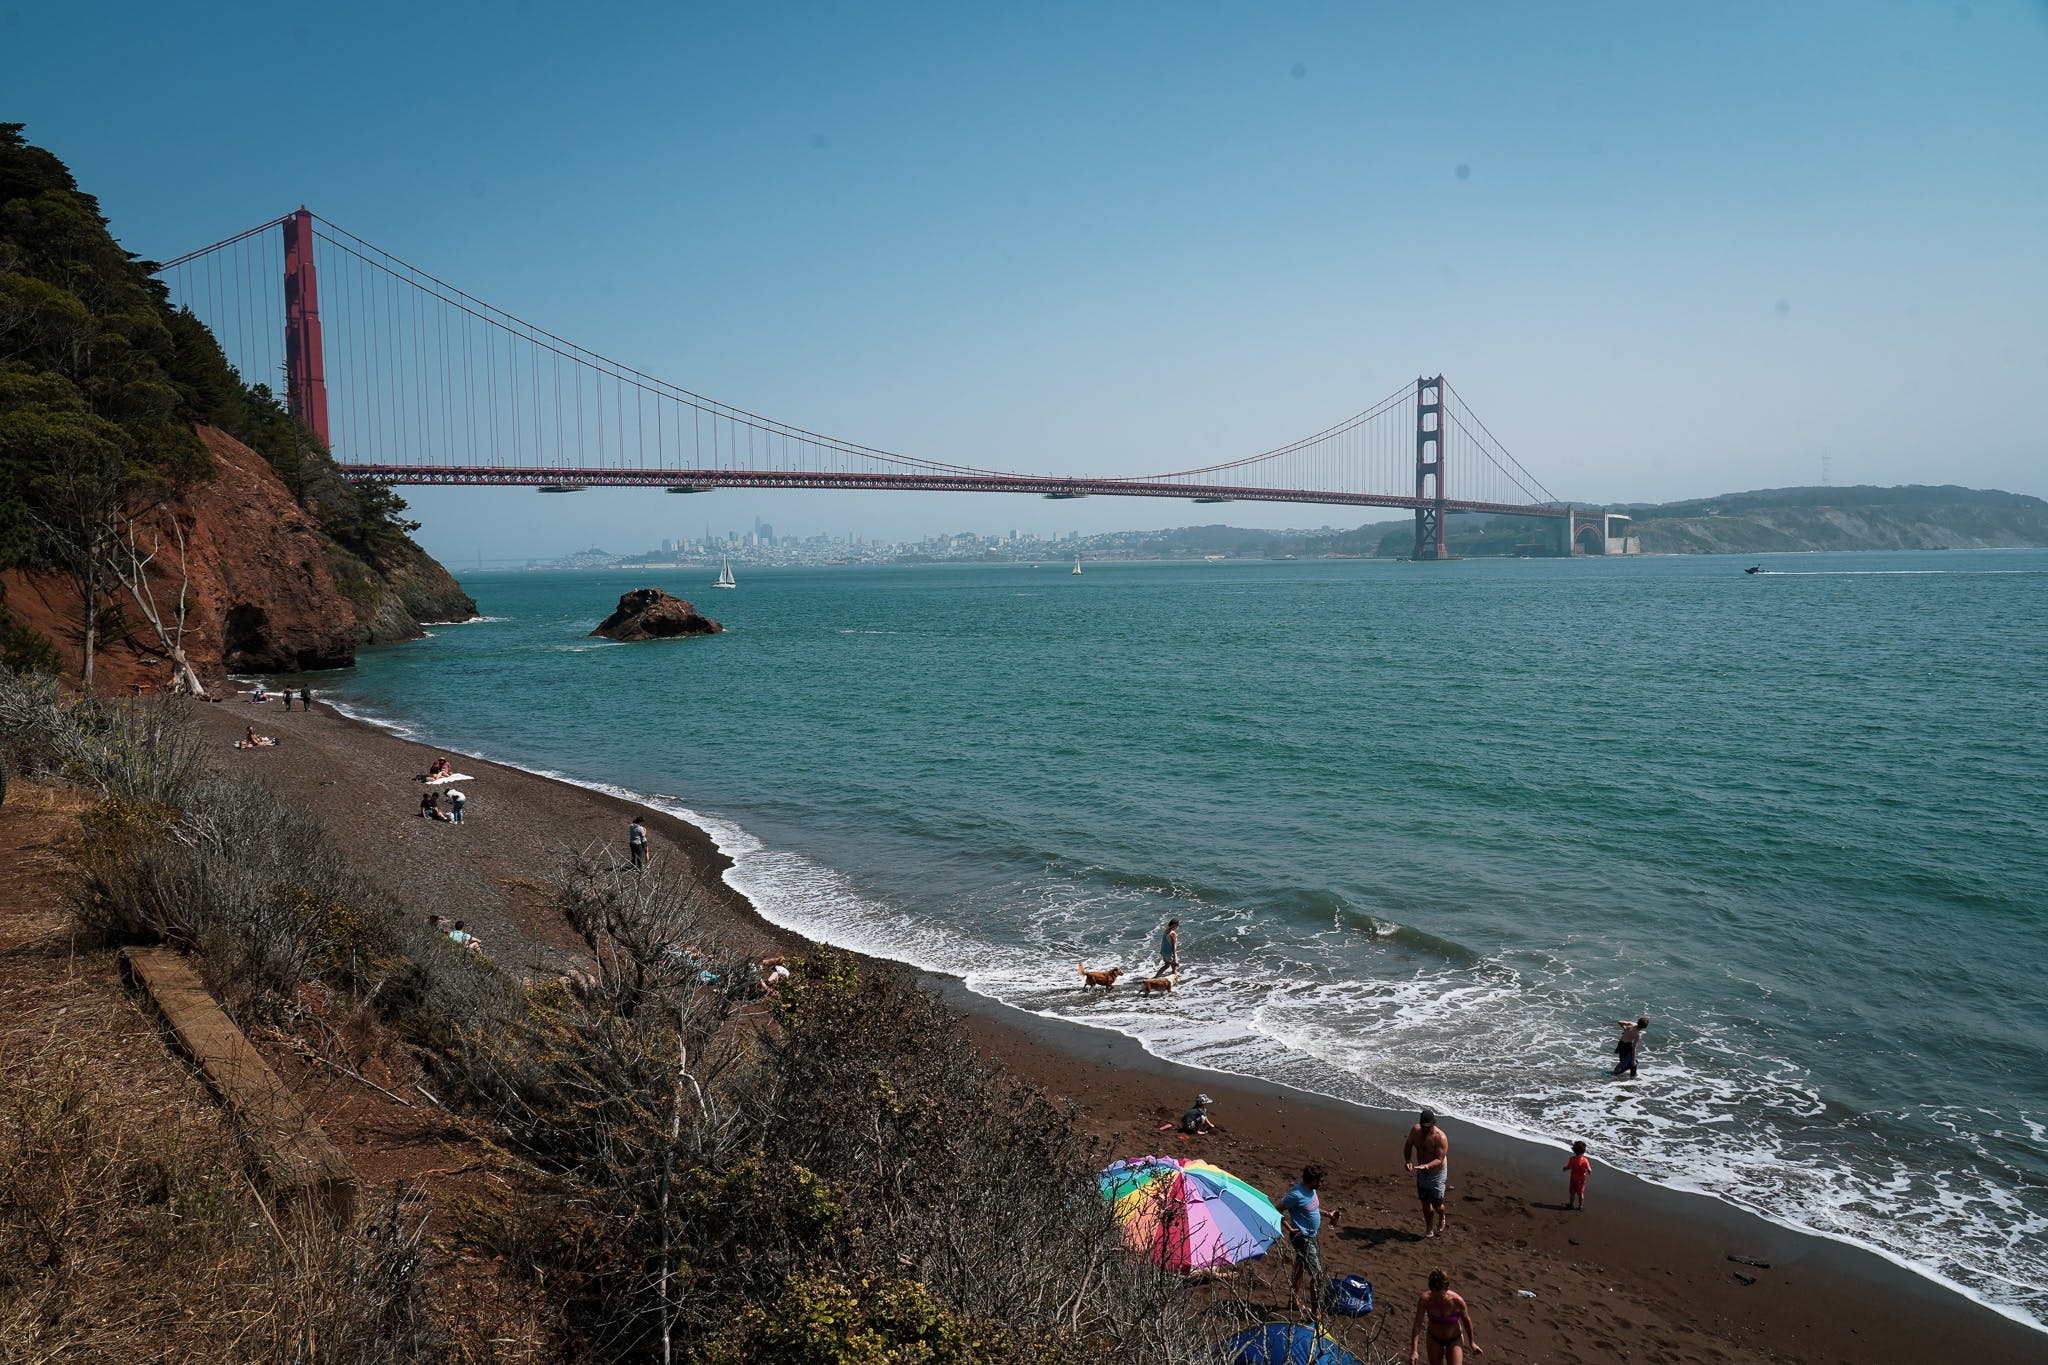 Kirby cove beach with a colorful sun umbrella and people on the beach with the Golden Gate Bridge in the background